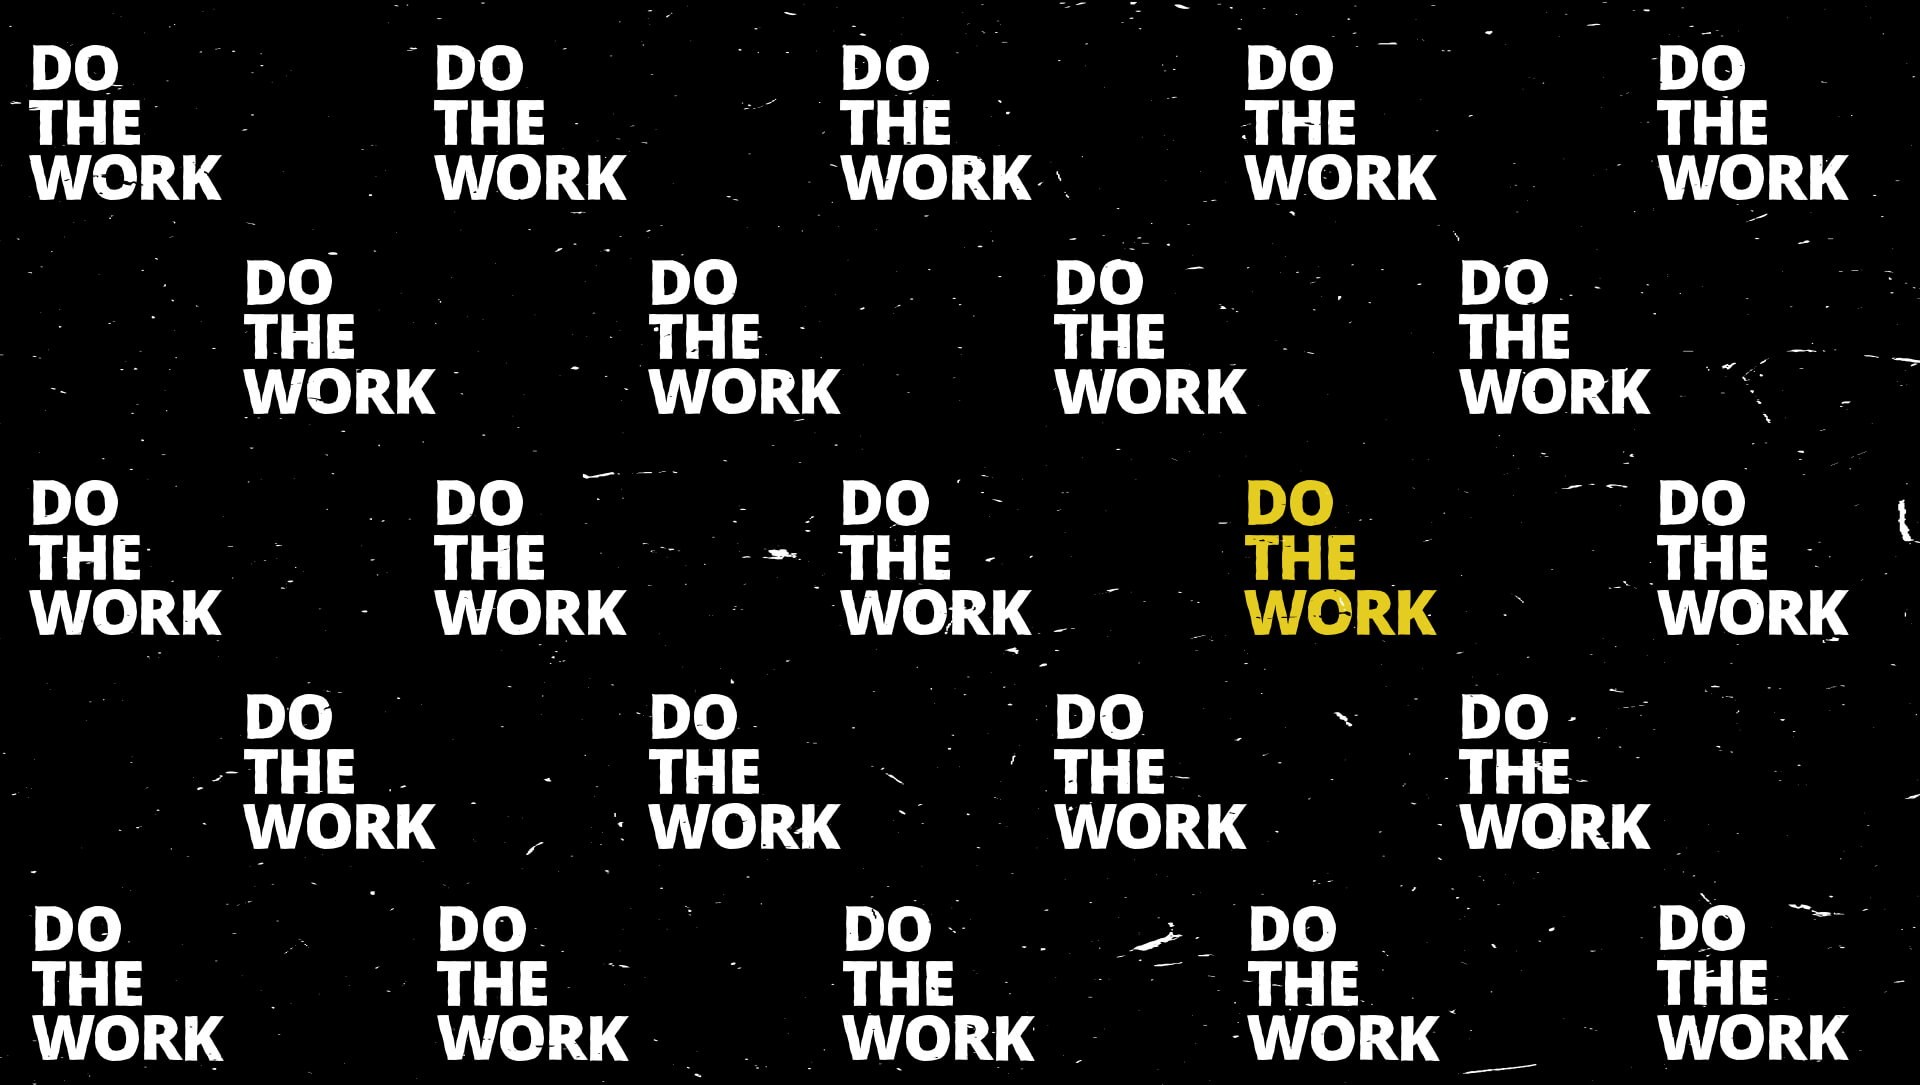 do the work footer image